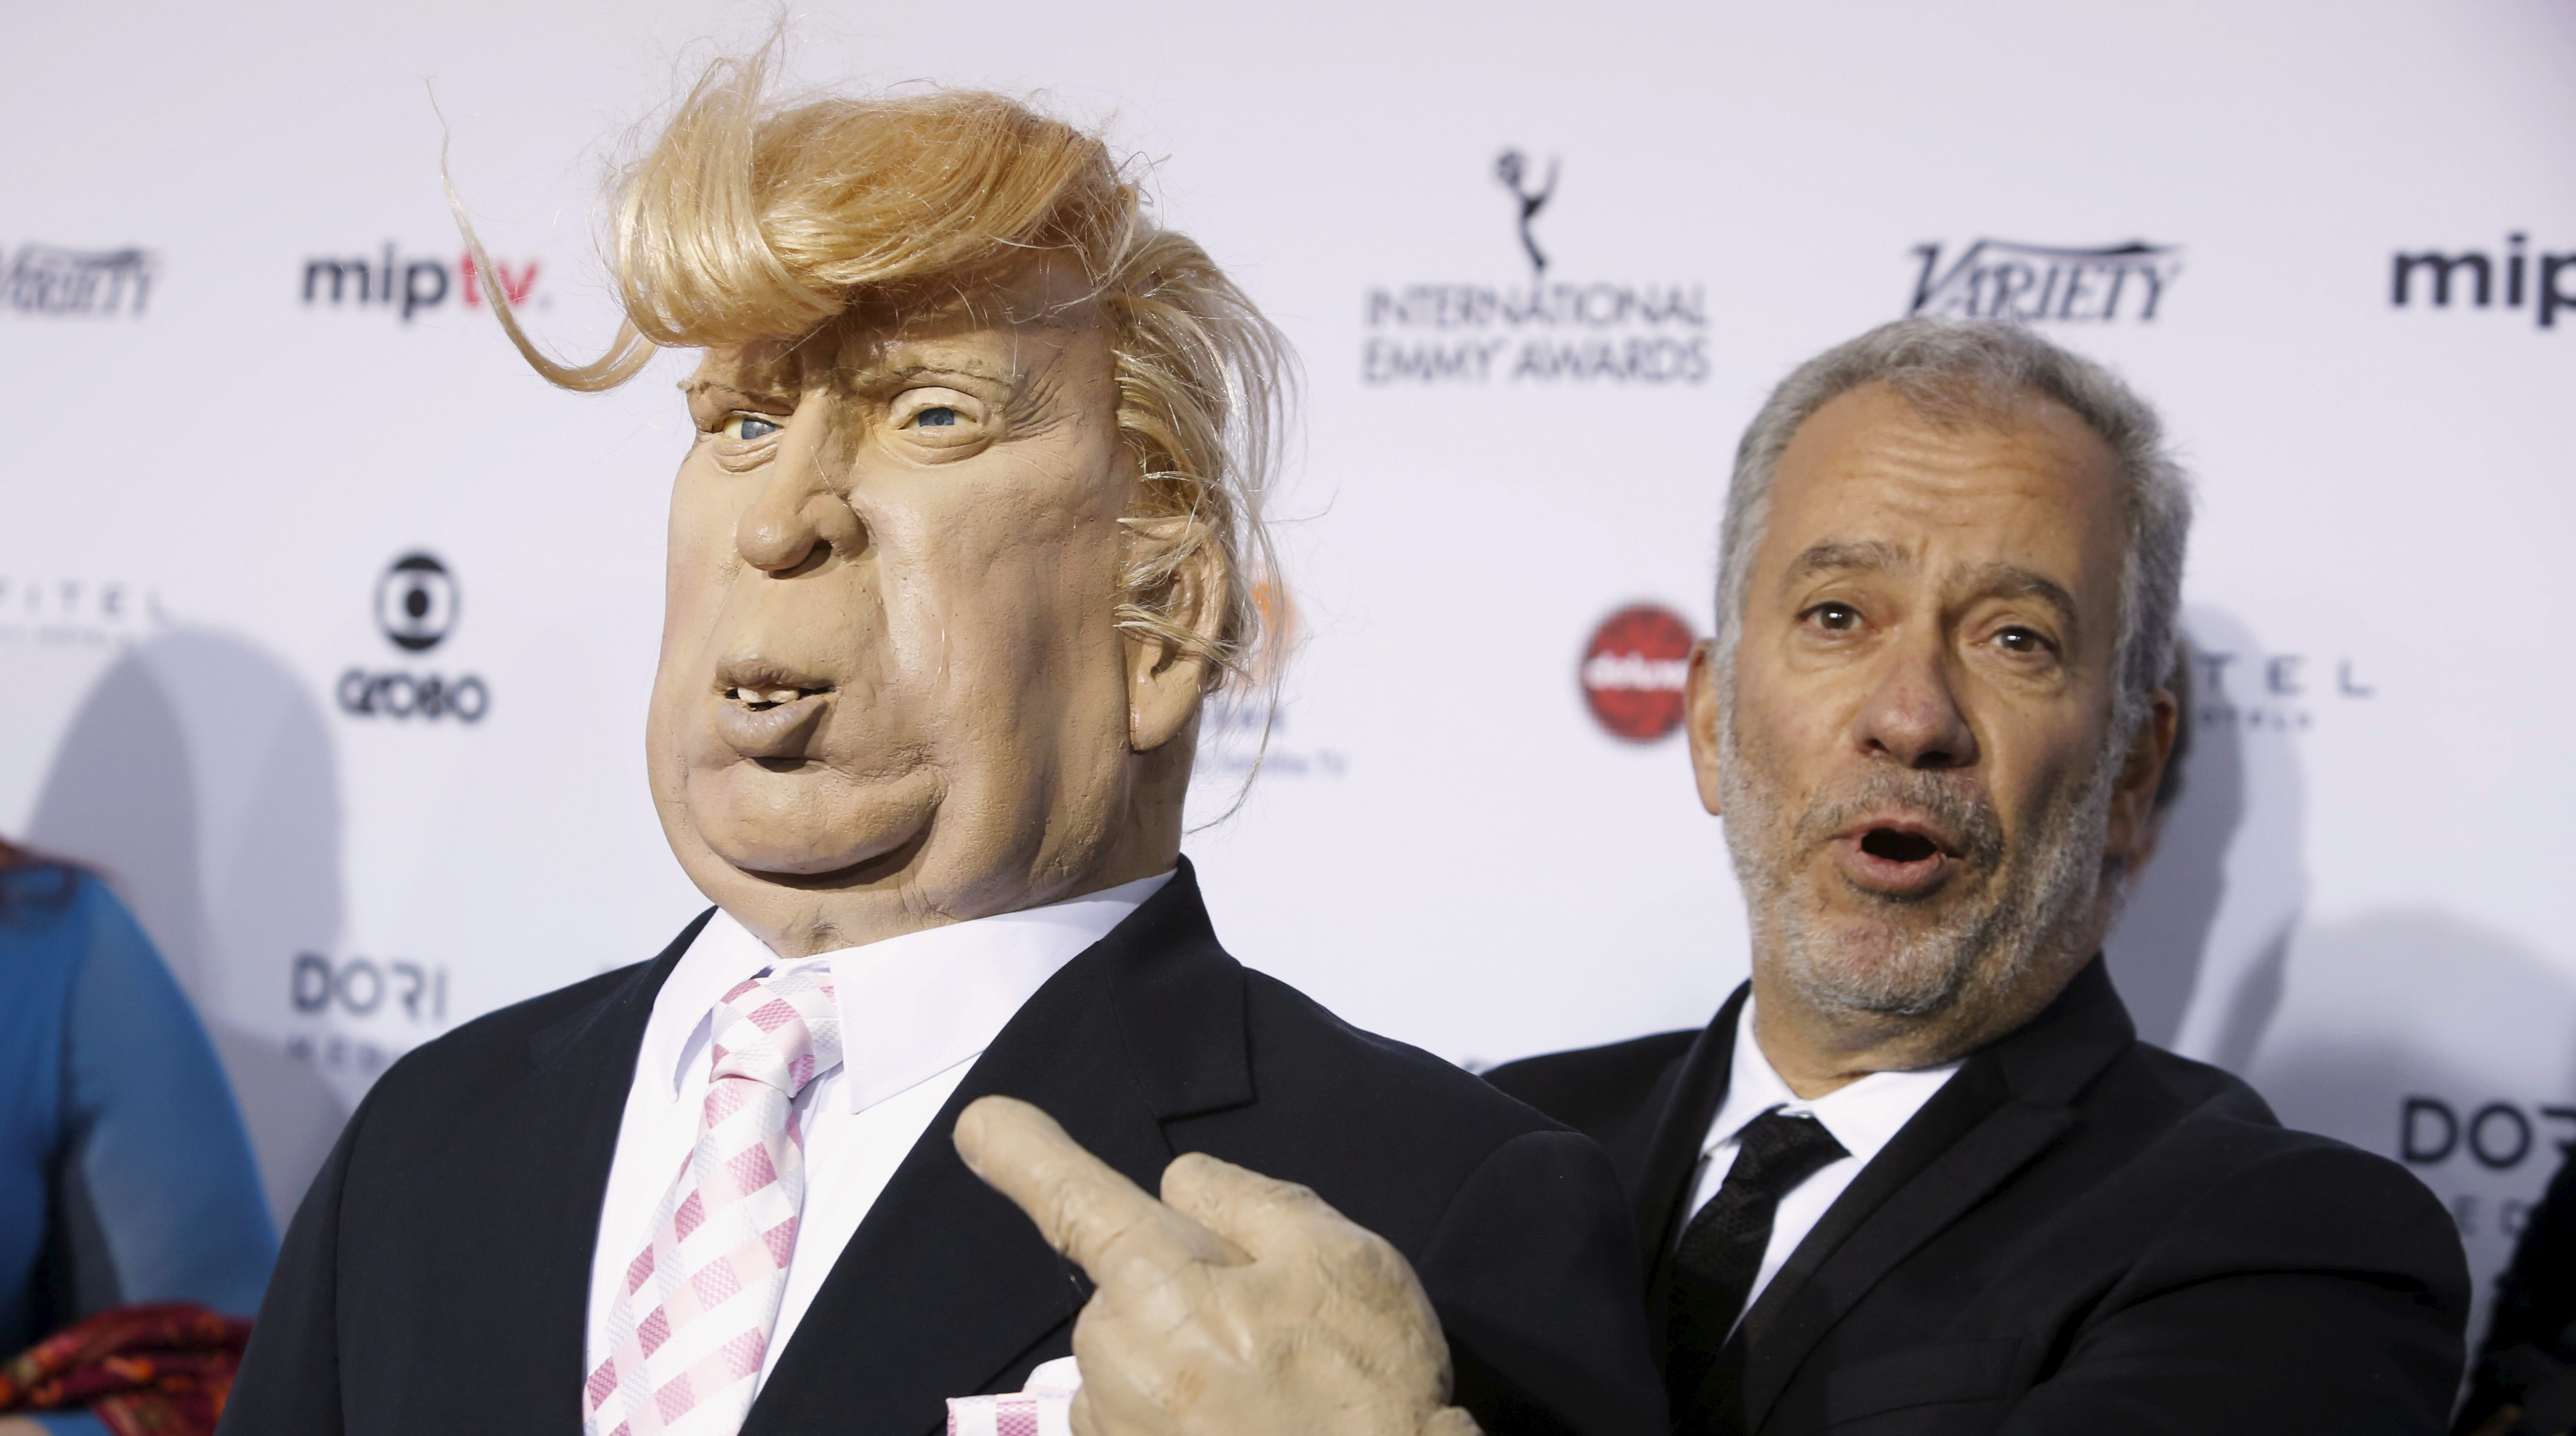 South Africa-based television producer Thierry Cassuto (R) holds a puppet of U.S businessman and Republican Presidential candidate Donald Trump as he attends the International Emmy Awards in Manhattan, New York November 23, 2015.